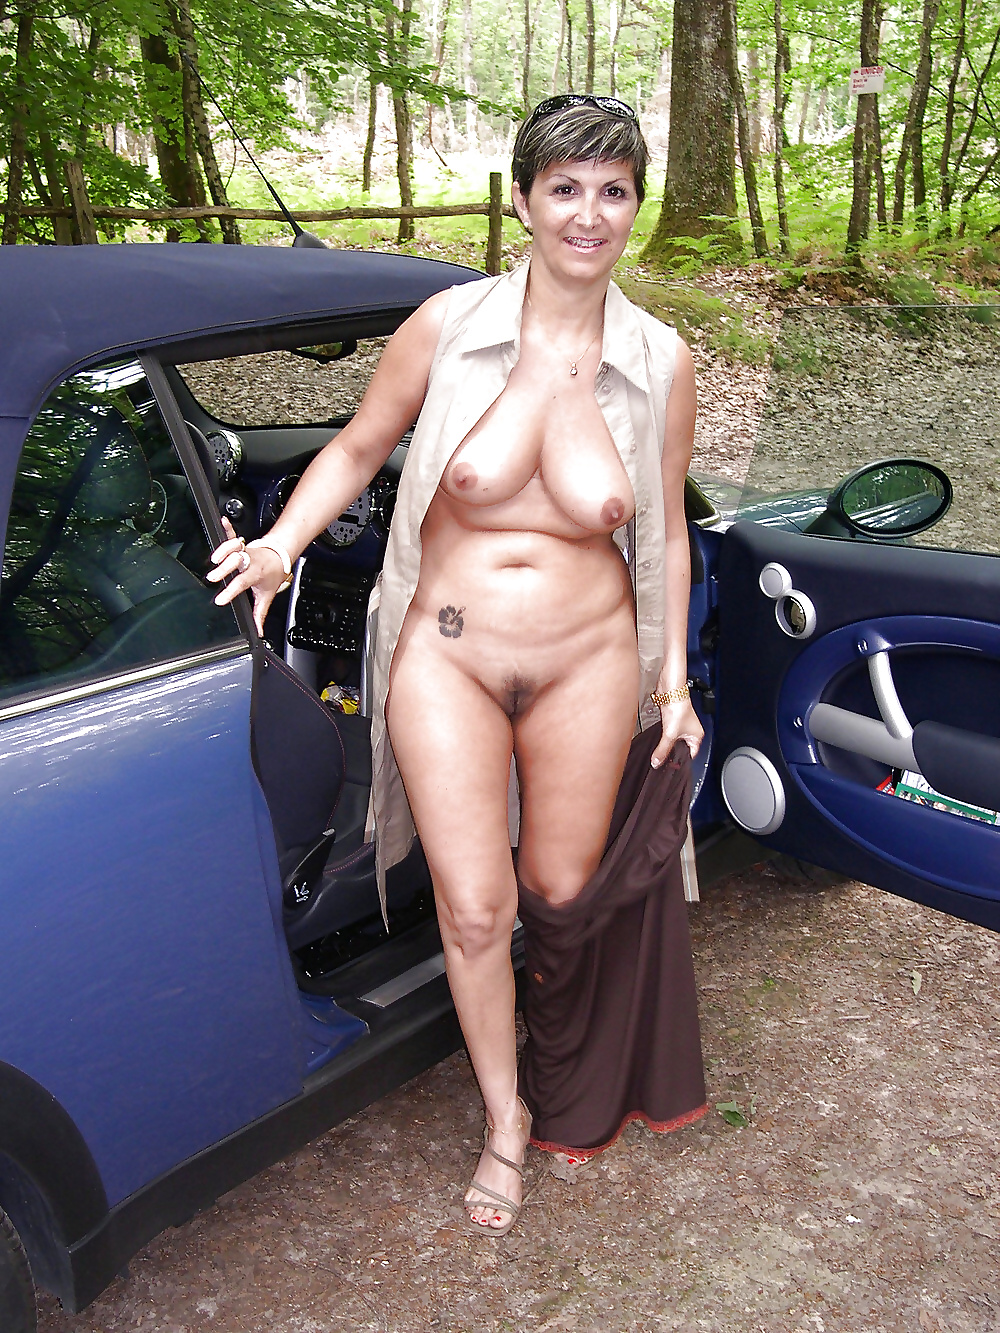 mature-naked-woman-in-public-paula-melo-sex